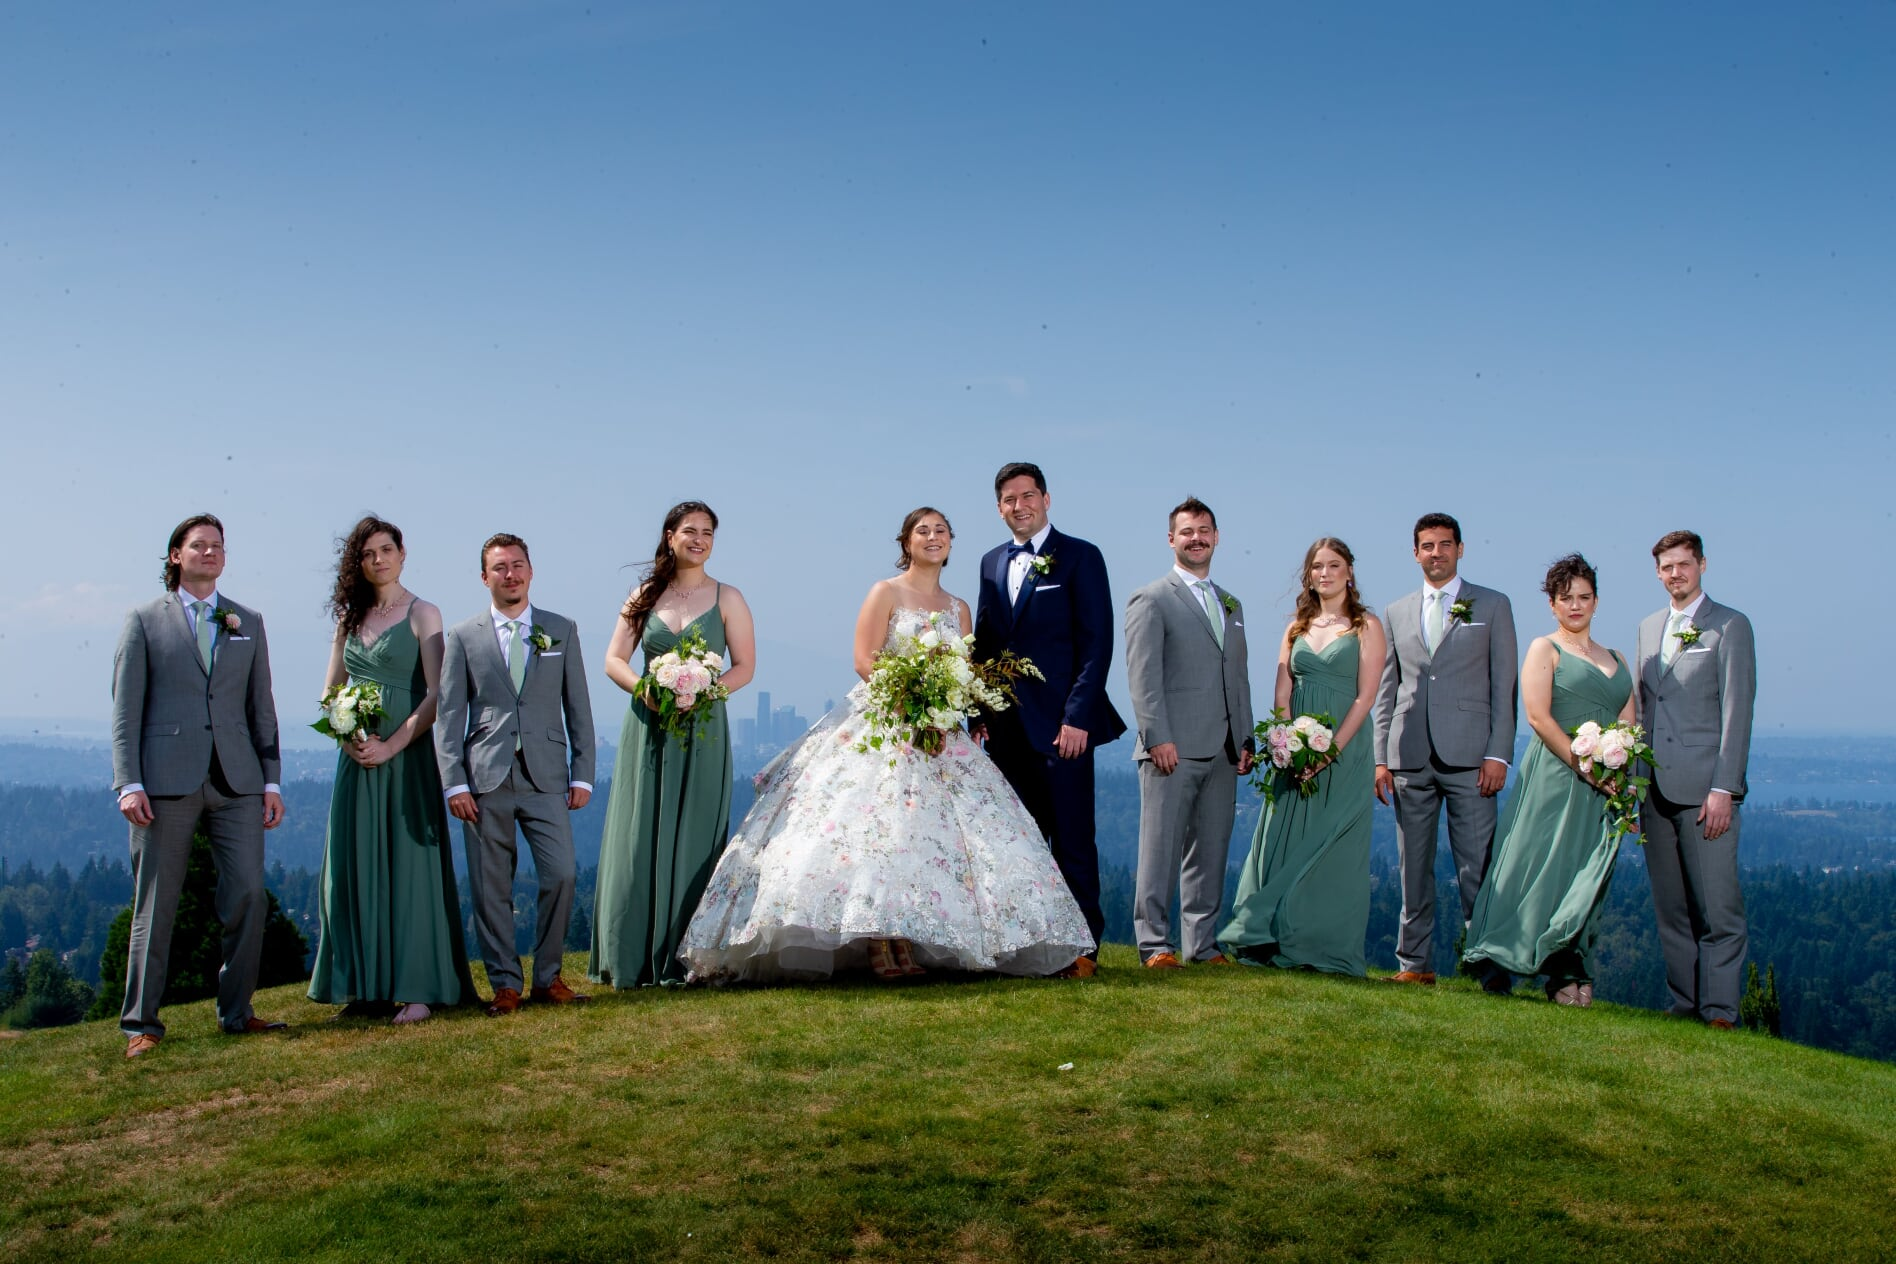 Bride in floral dress and bridemaids in sage bridesmaids dresses standing on grassy hill